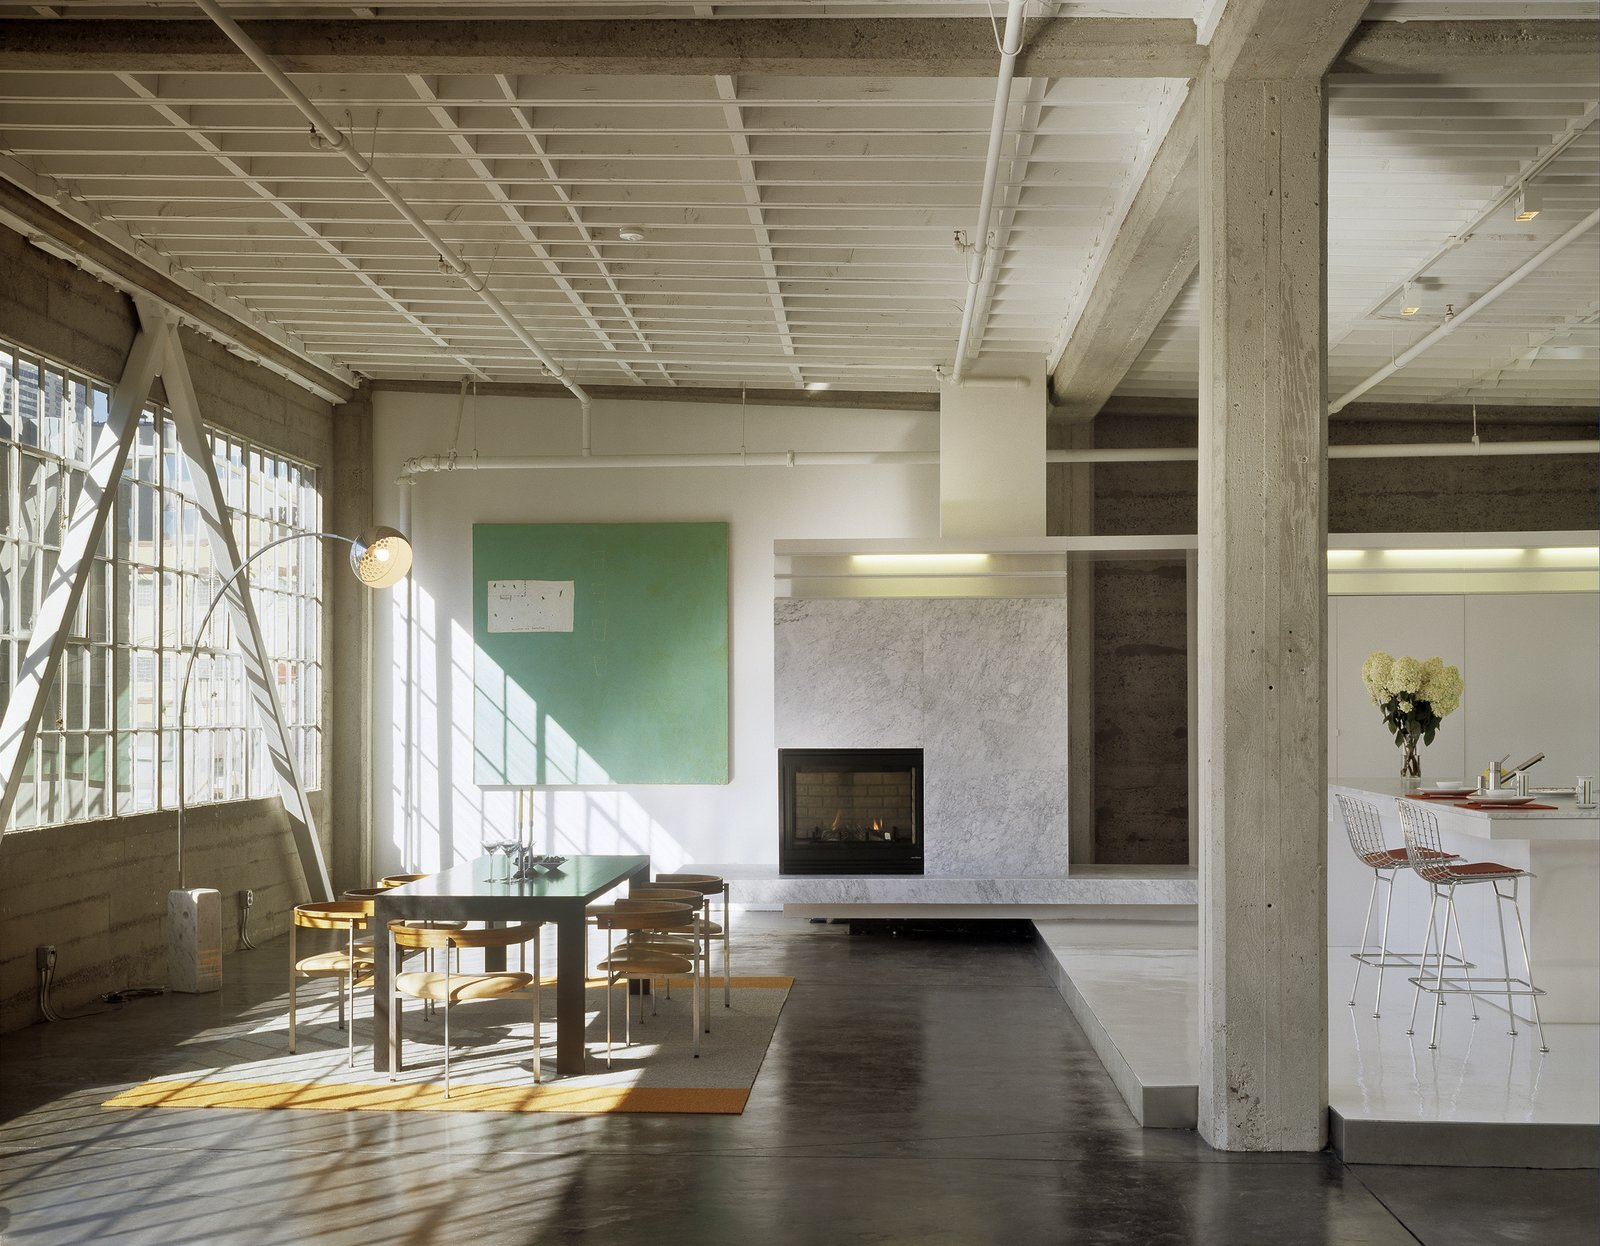 Dining Room, Two-Sided Fireplace, Chair, Bar, Corner Fireplace, Pendant Lighting, Concrete Floor, and Table Dining area  Tehama Grasshopper by Fougeron Architecture